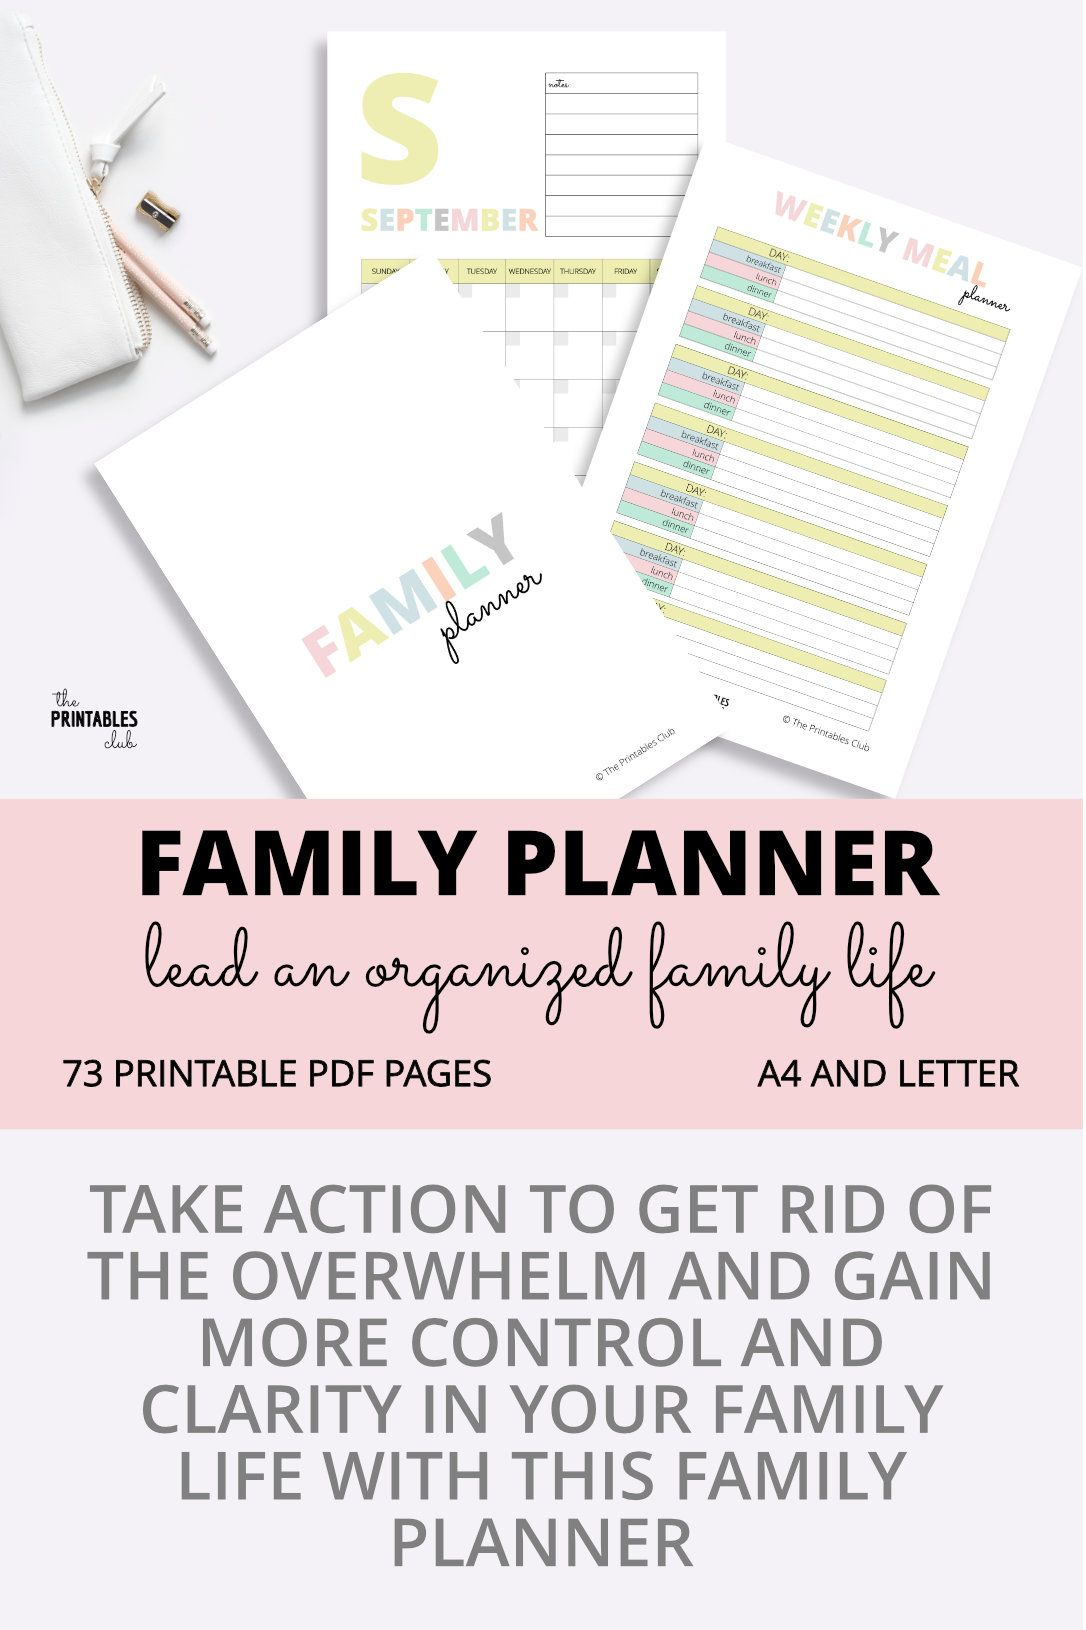 Take Action To Get Rid Of The Mom Overwhelm And Gain More Control And Clarity In Your Family Life With This Fa Family Planner Family Planner Printables Planner